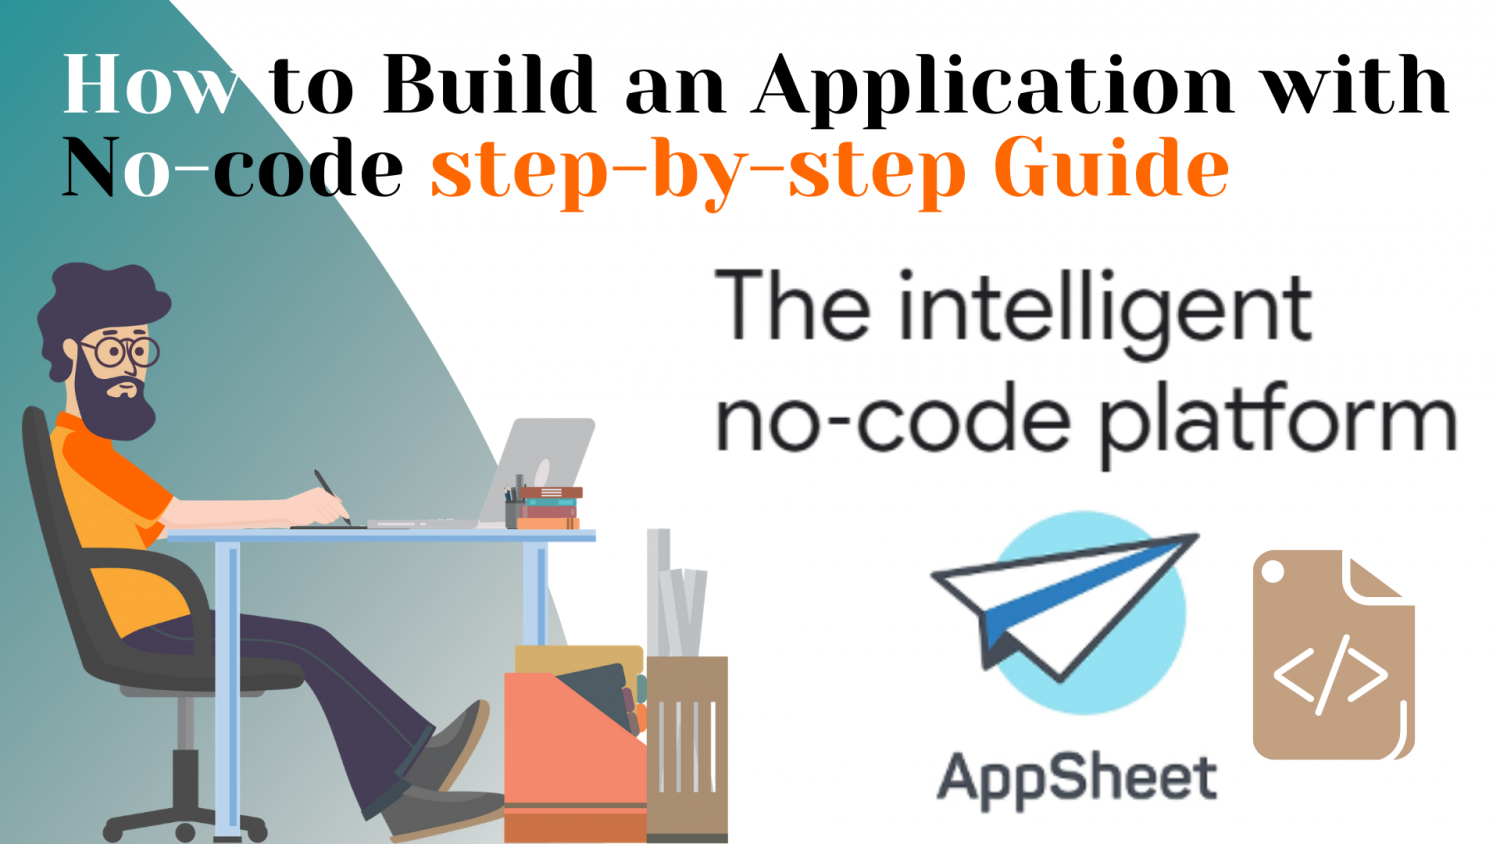 https://www.clubinfonline.com/2020/10/24/build-an-application-with-no-code-step-by-step-guide/